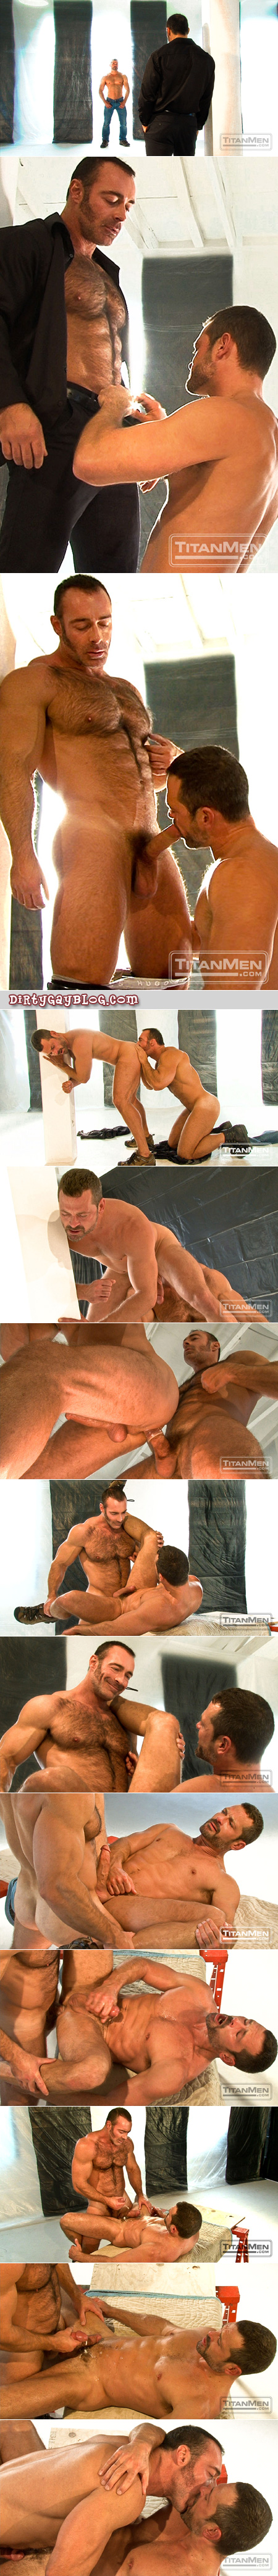 Hairy, gigantic man with lamb chop sideburns sticks his curved dick into an older macho guy's tight asshole.